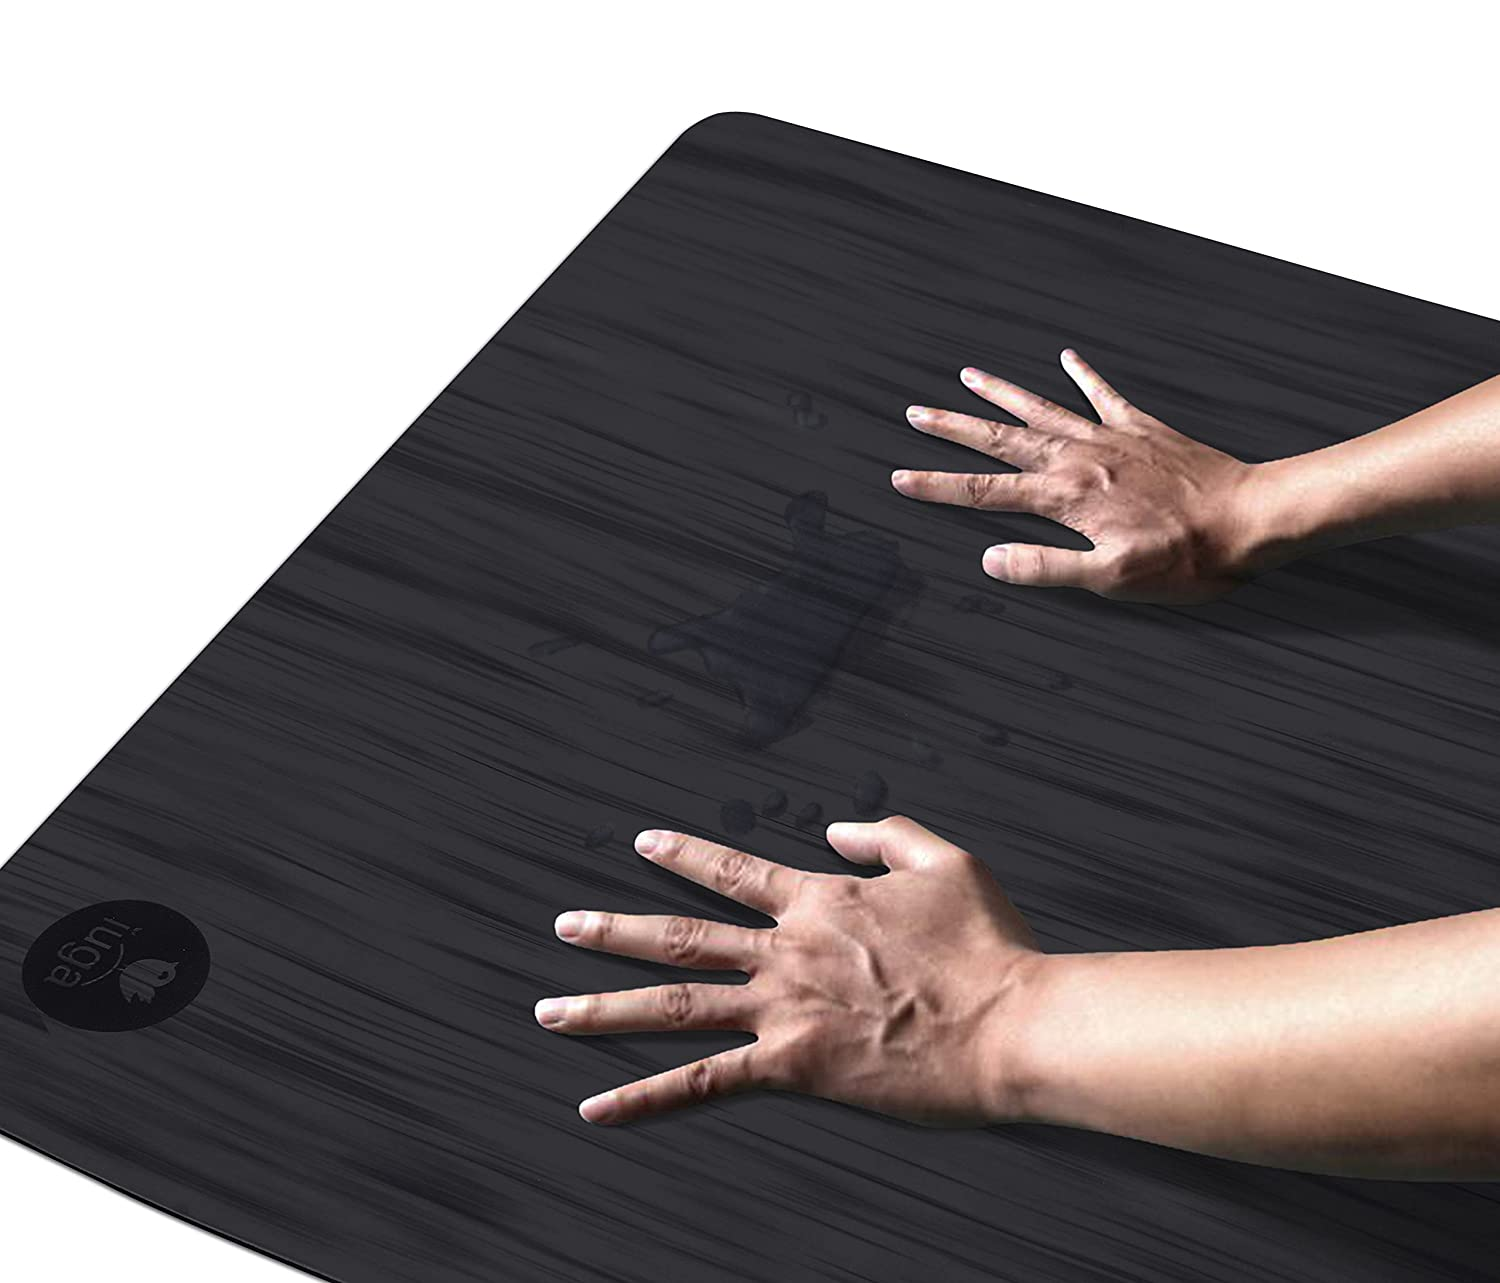 Eco Friendly and SGS Certified Material for Hot Yoga Odorless Lightweight and Extra Large Size IUGA Pro Non Slip Yoga mat Unbeatable Non Slip Performance Free Carry Strap